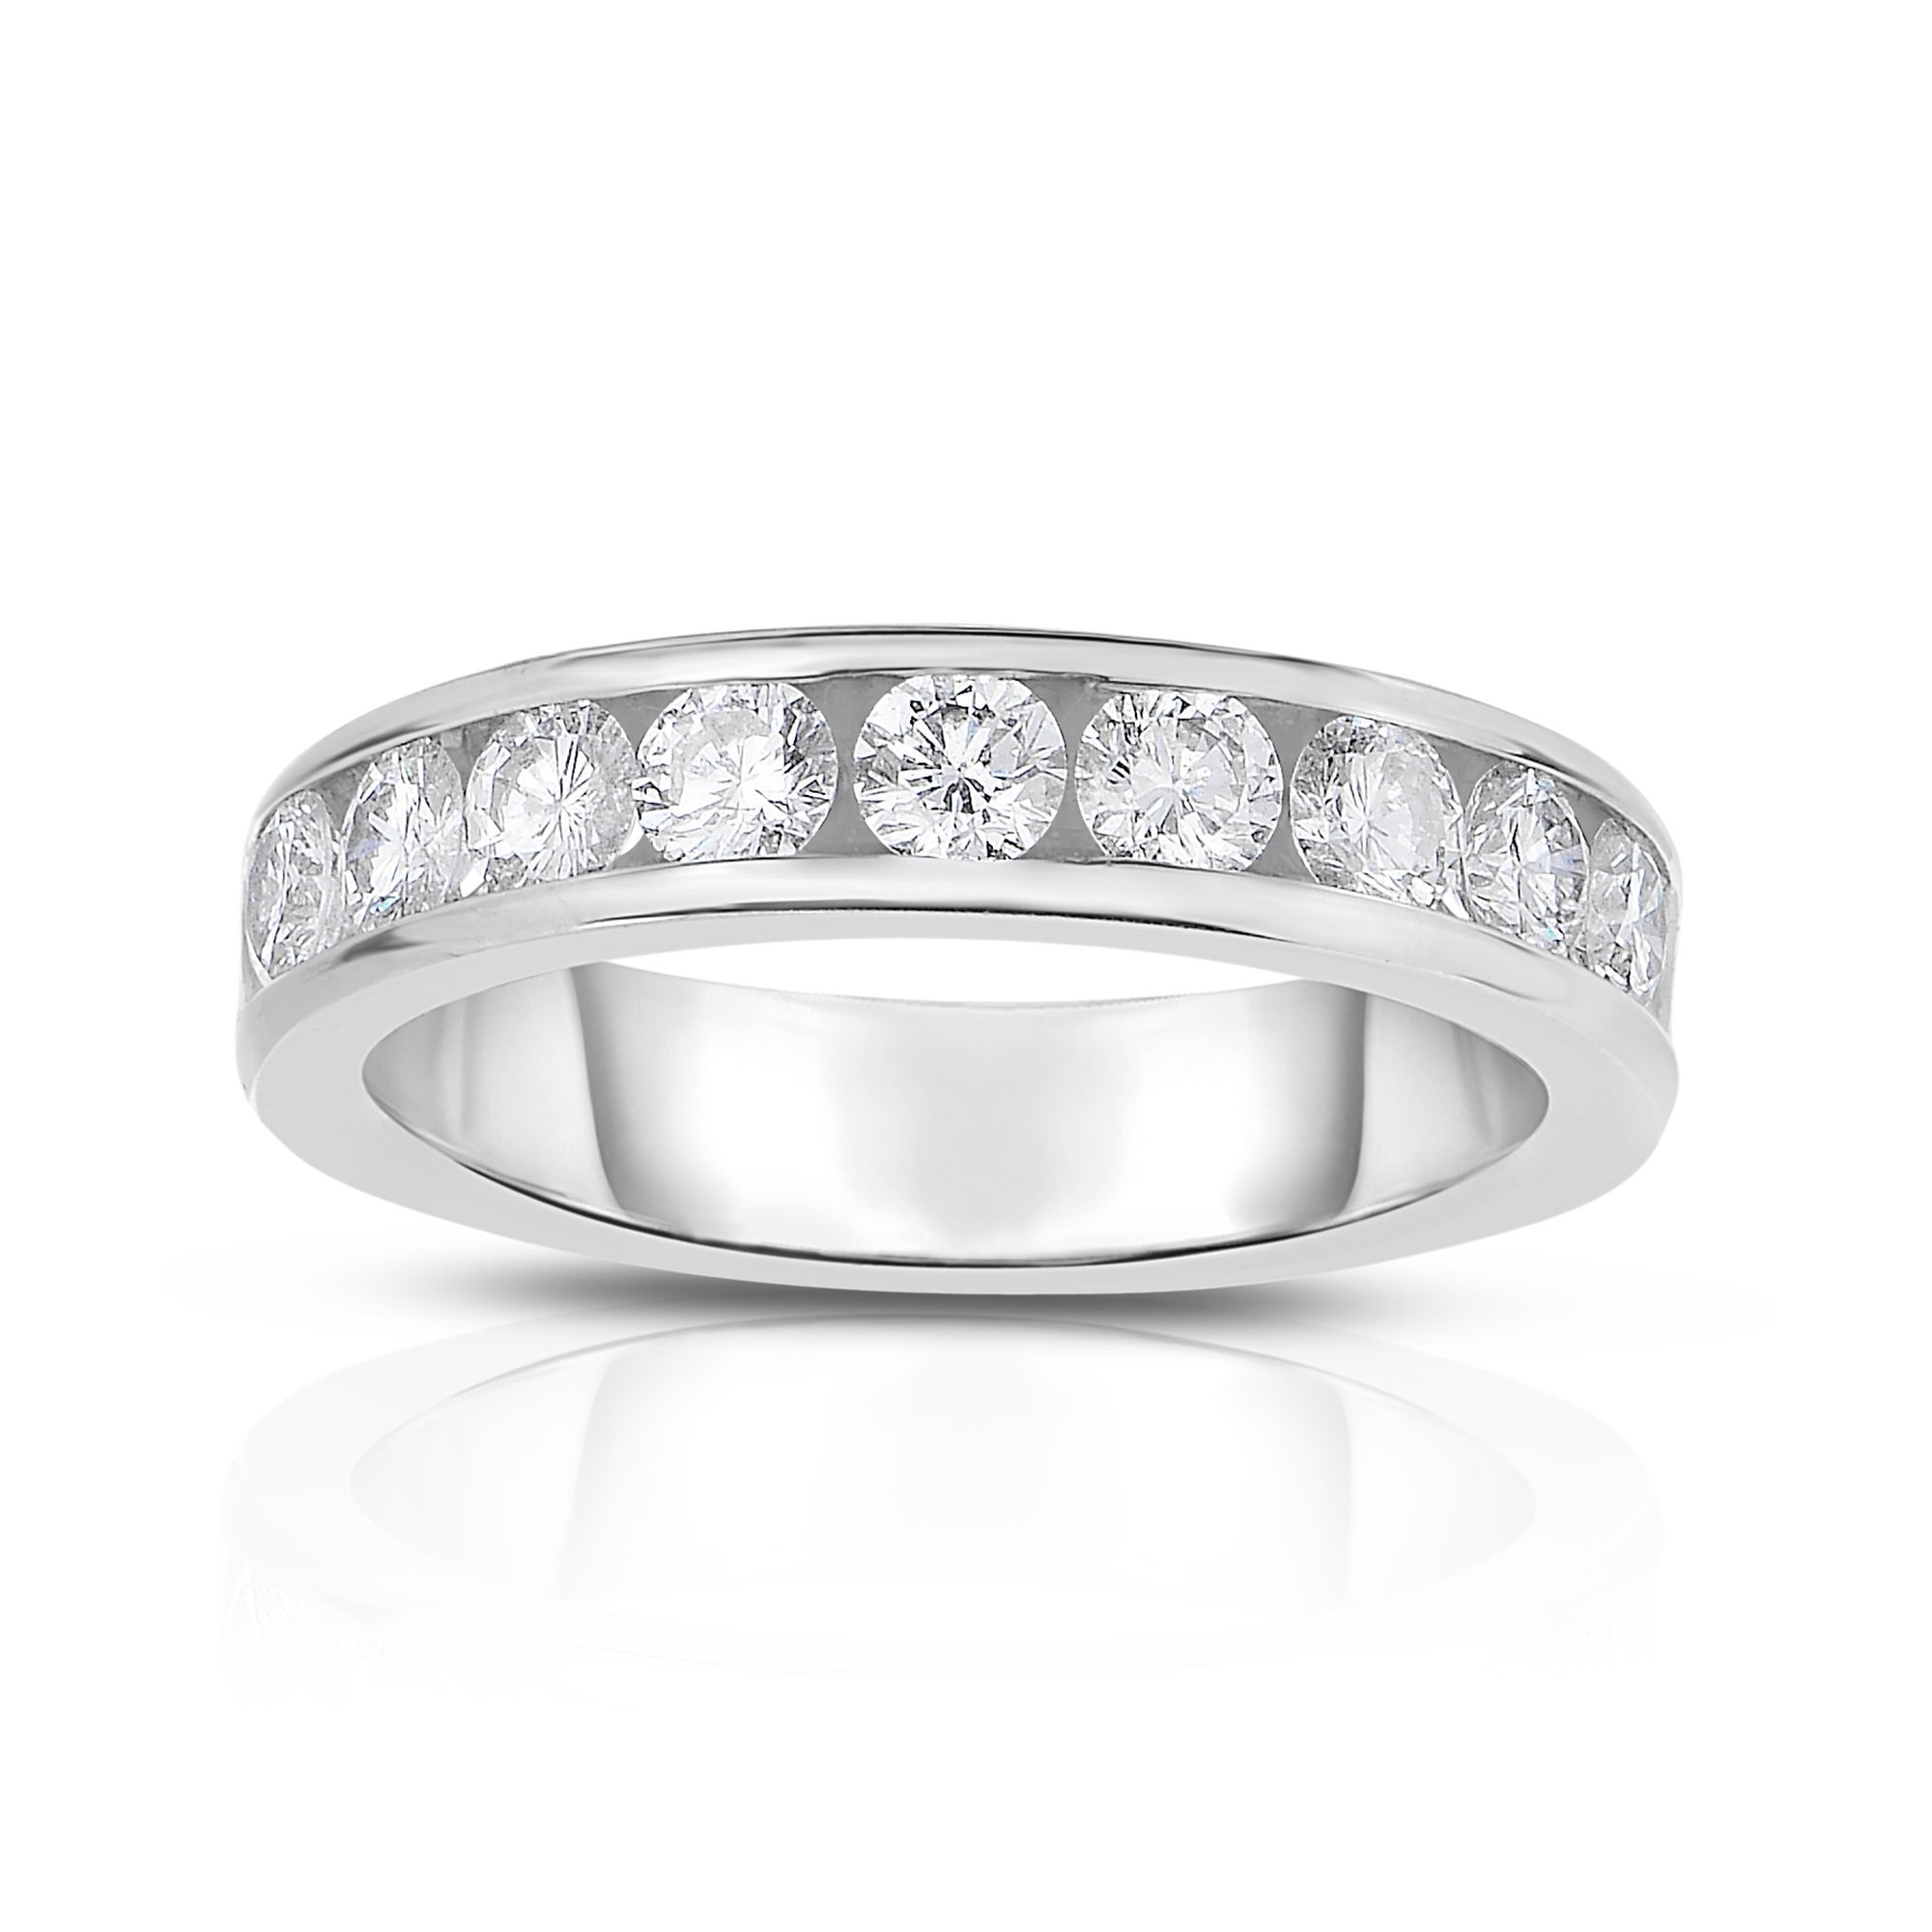 ring jewellery engagement in index rings norwich aurum shop classic products solitaire b wedding